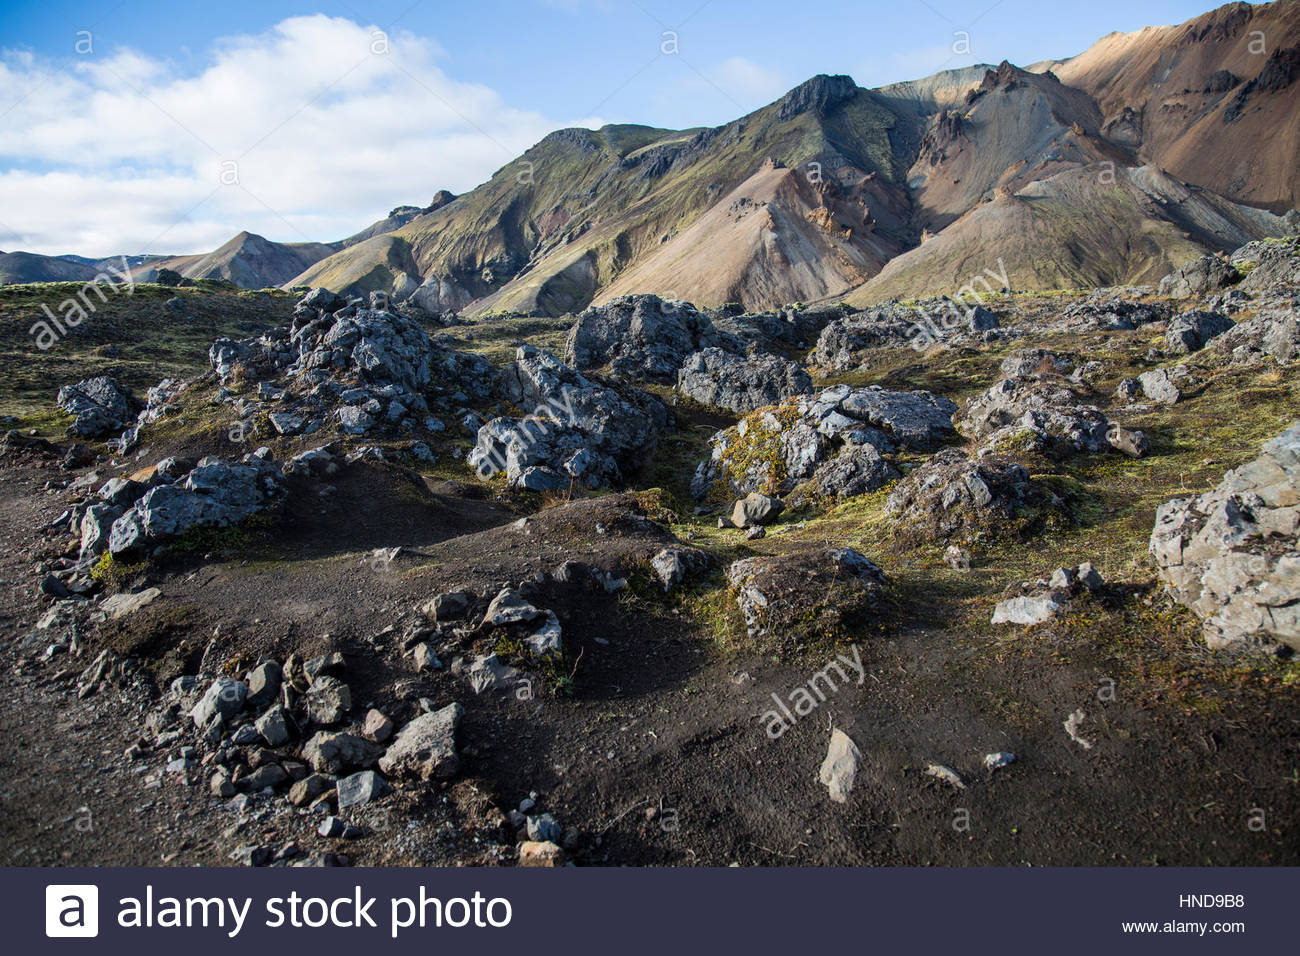 Volcanic Landscape Blue Sky Stock Photo